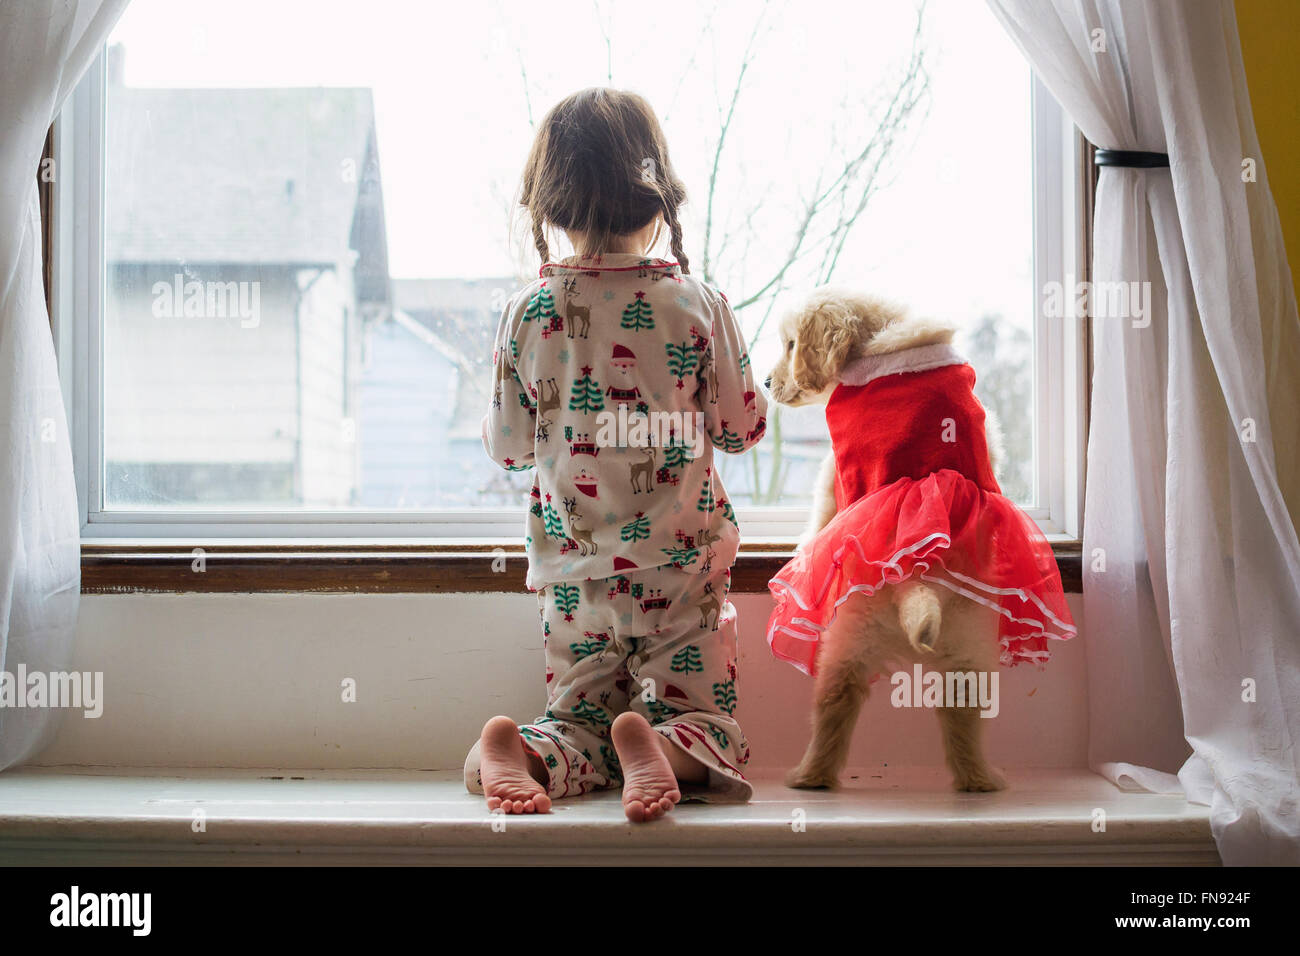 Girl in pyjamas looking out the window with golden retriever puppy dog - Stock Image